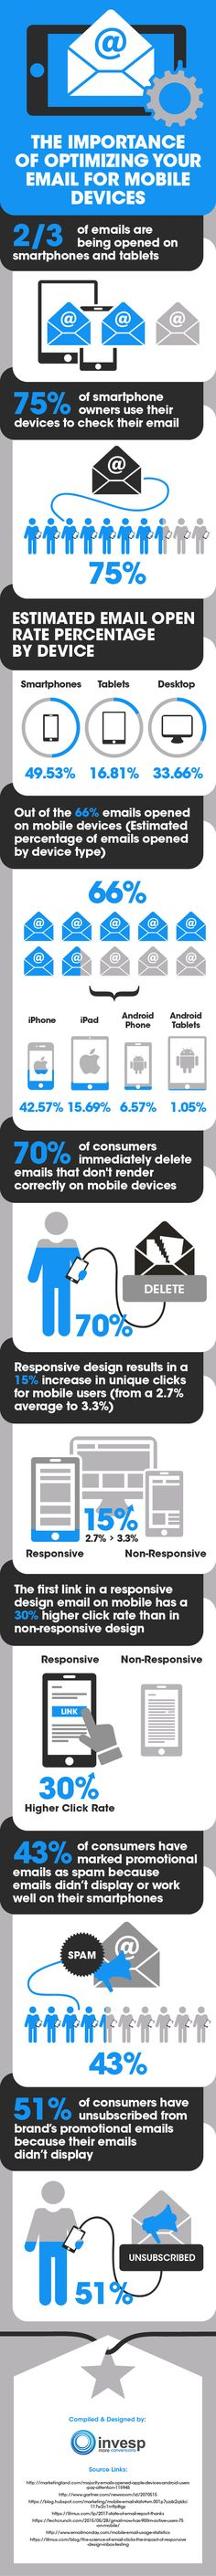 The importance of optimizing your email for mobile devices